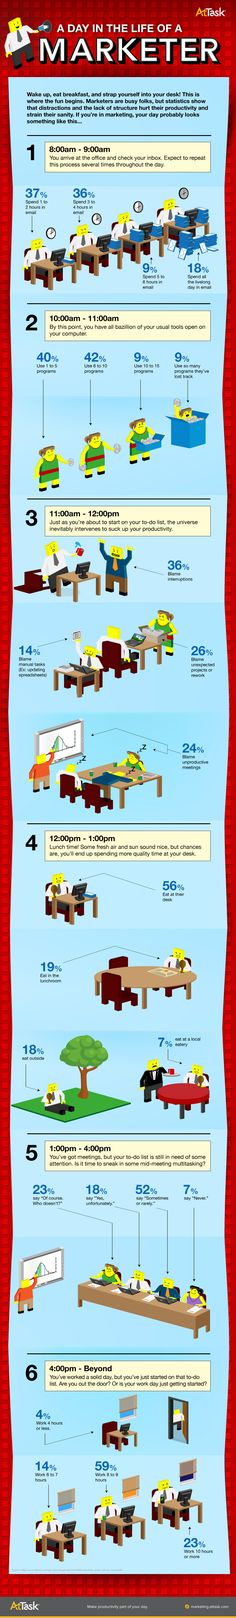 A Day in the Life of a Digital Marketer #infographic #marketing #Marketer